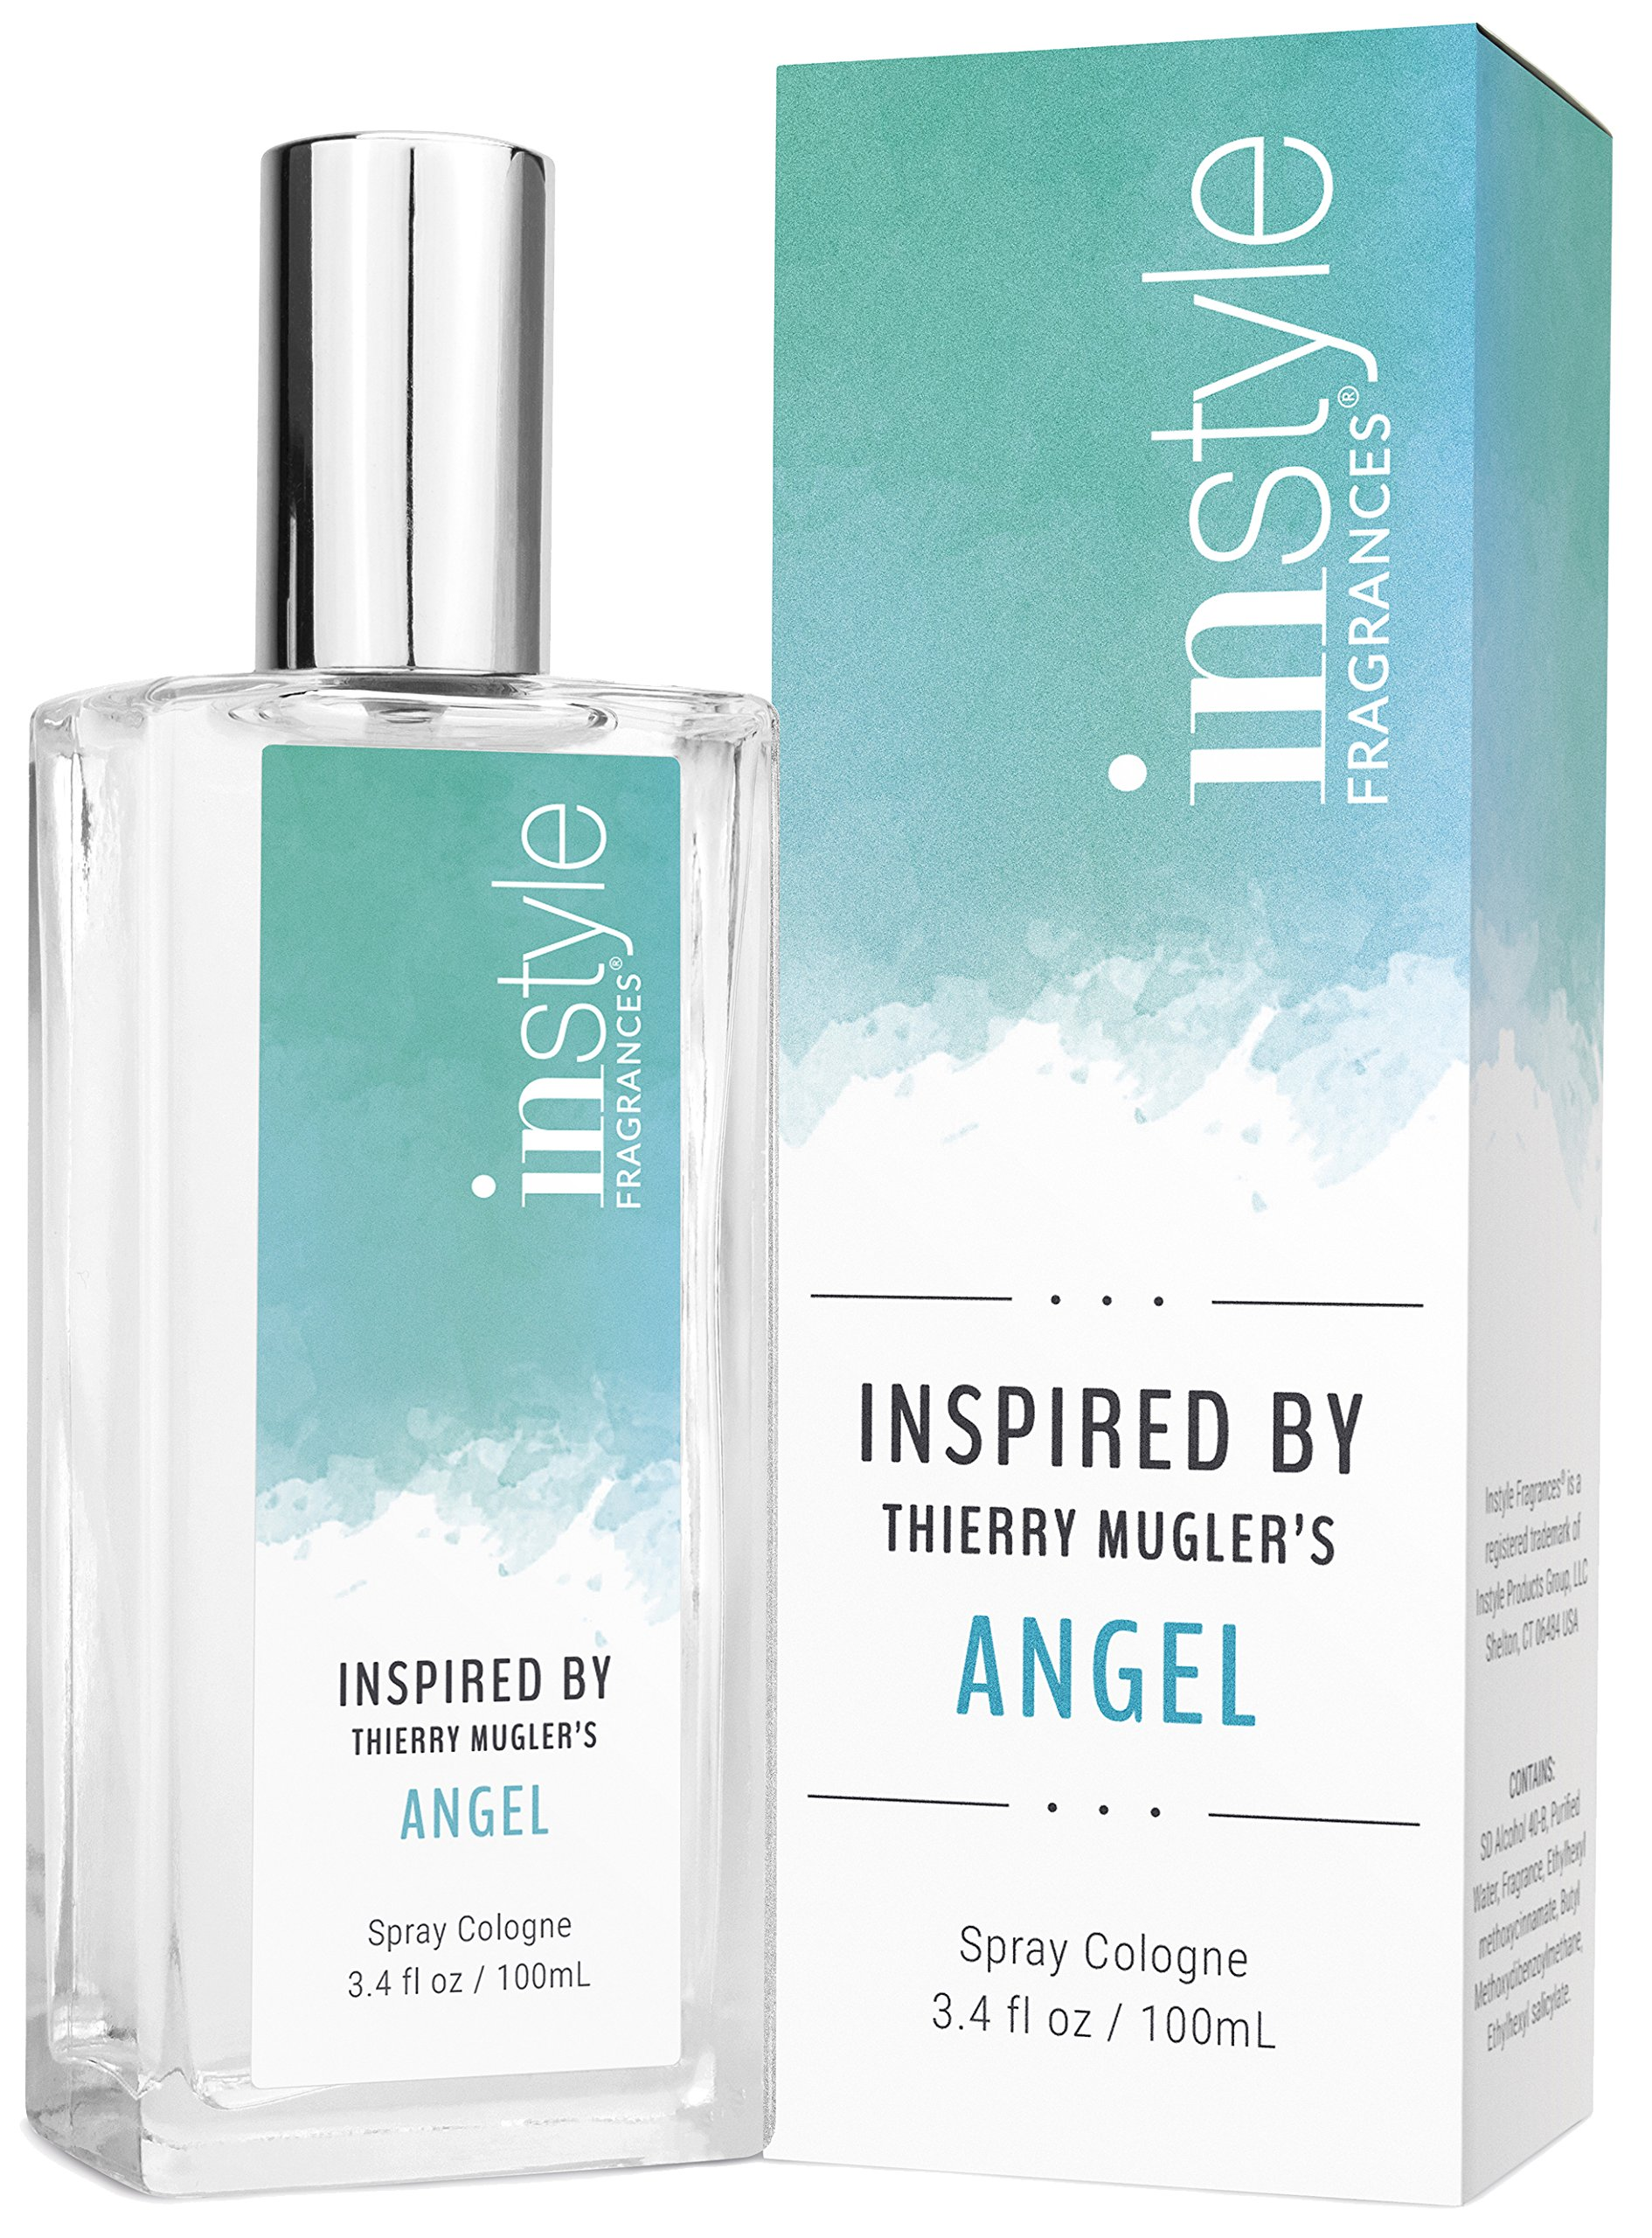 Instyle Fragrances Inspired by Thierry Mugler's